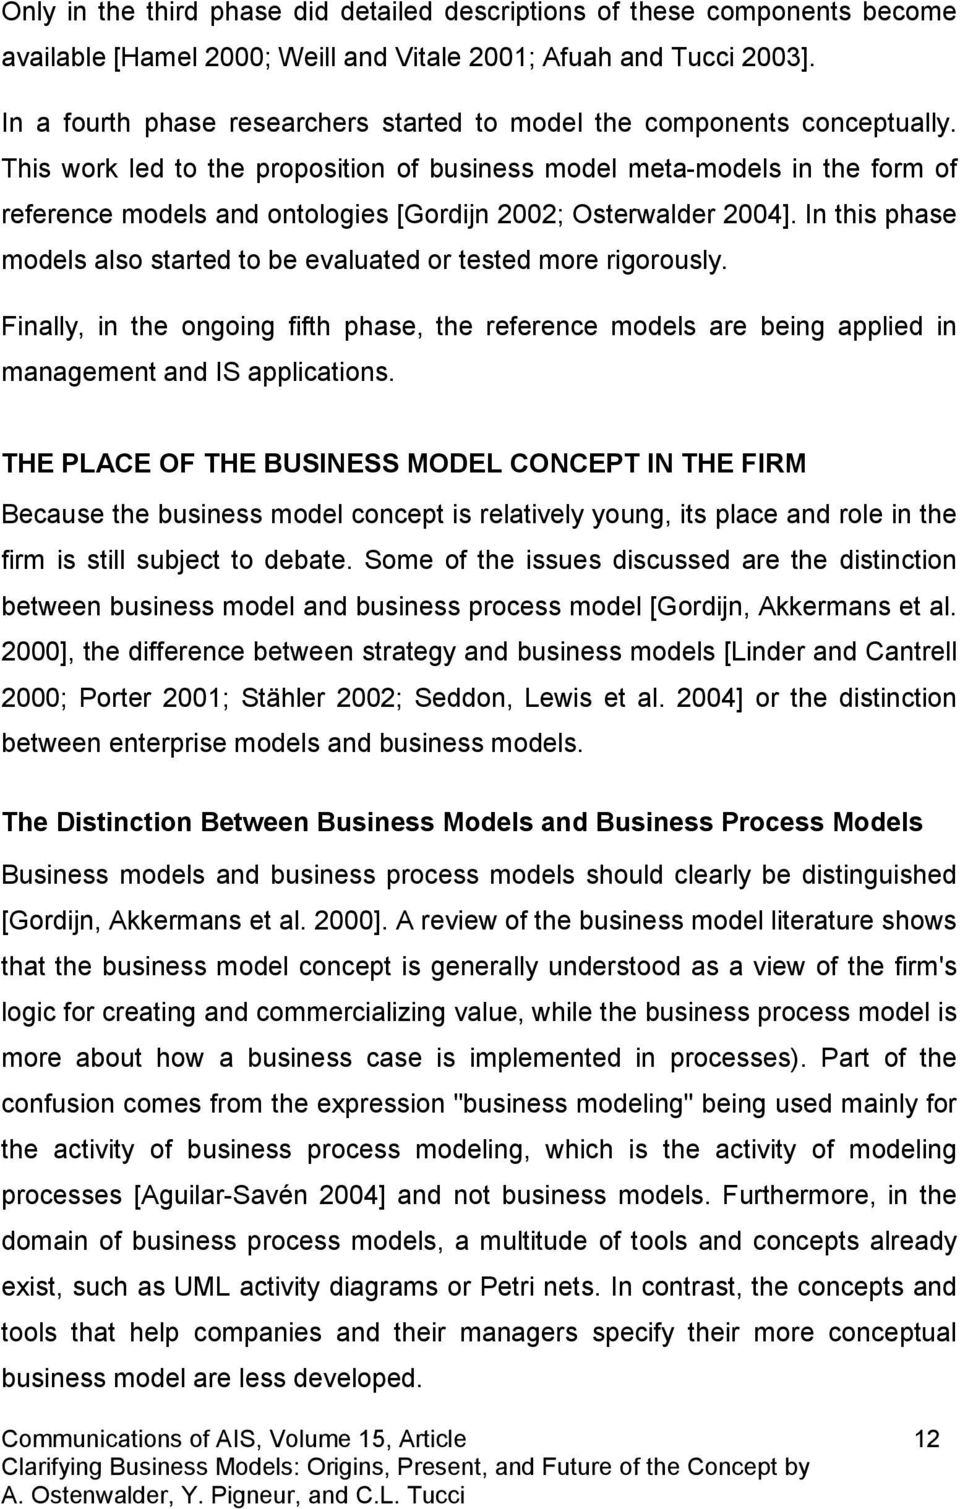 This work led to the proposition of business model meta-models in the form of reference models and ontologies [Gordijn 2002; Osterwalder 2004].